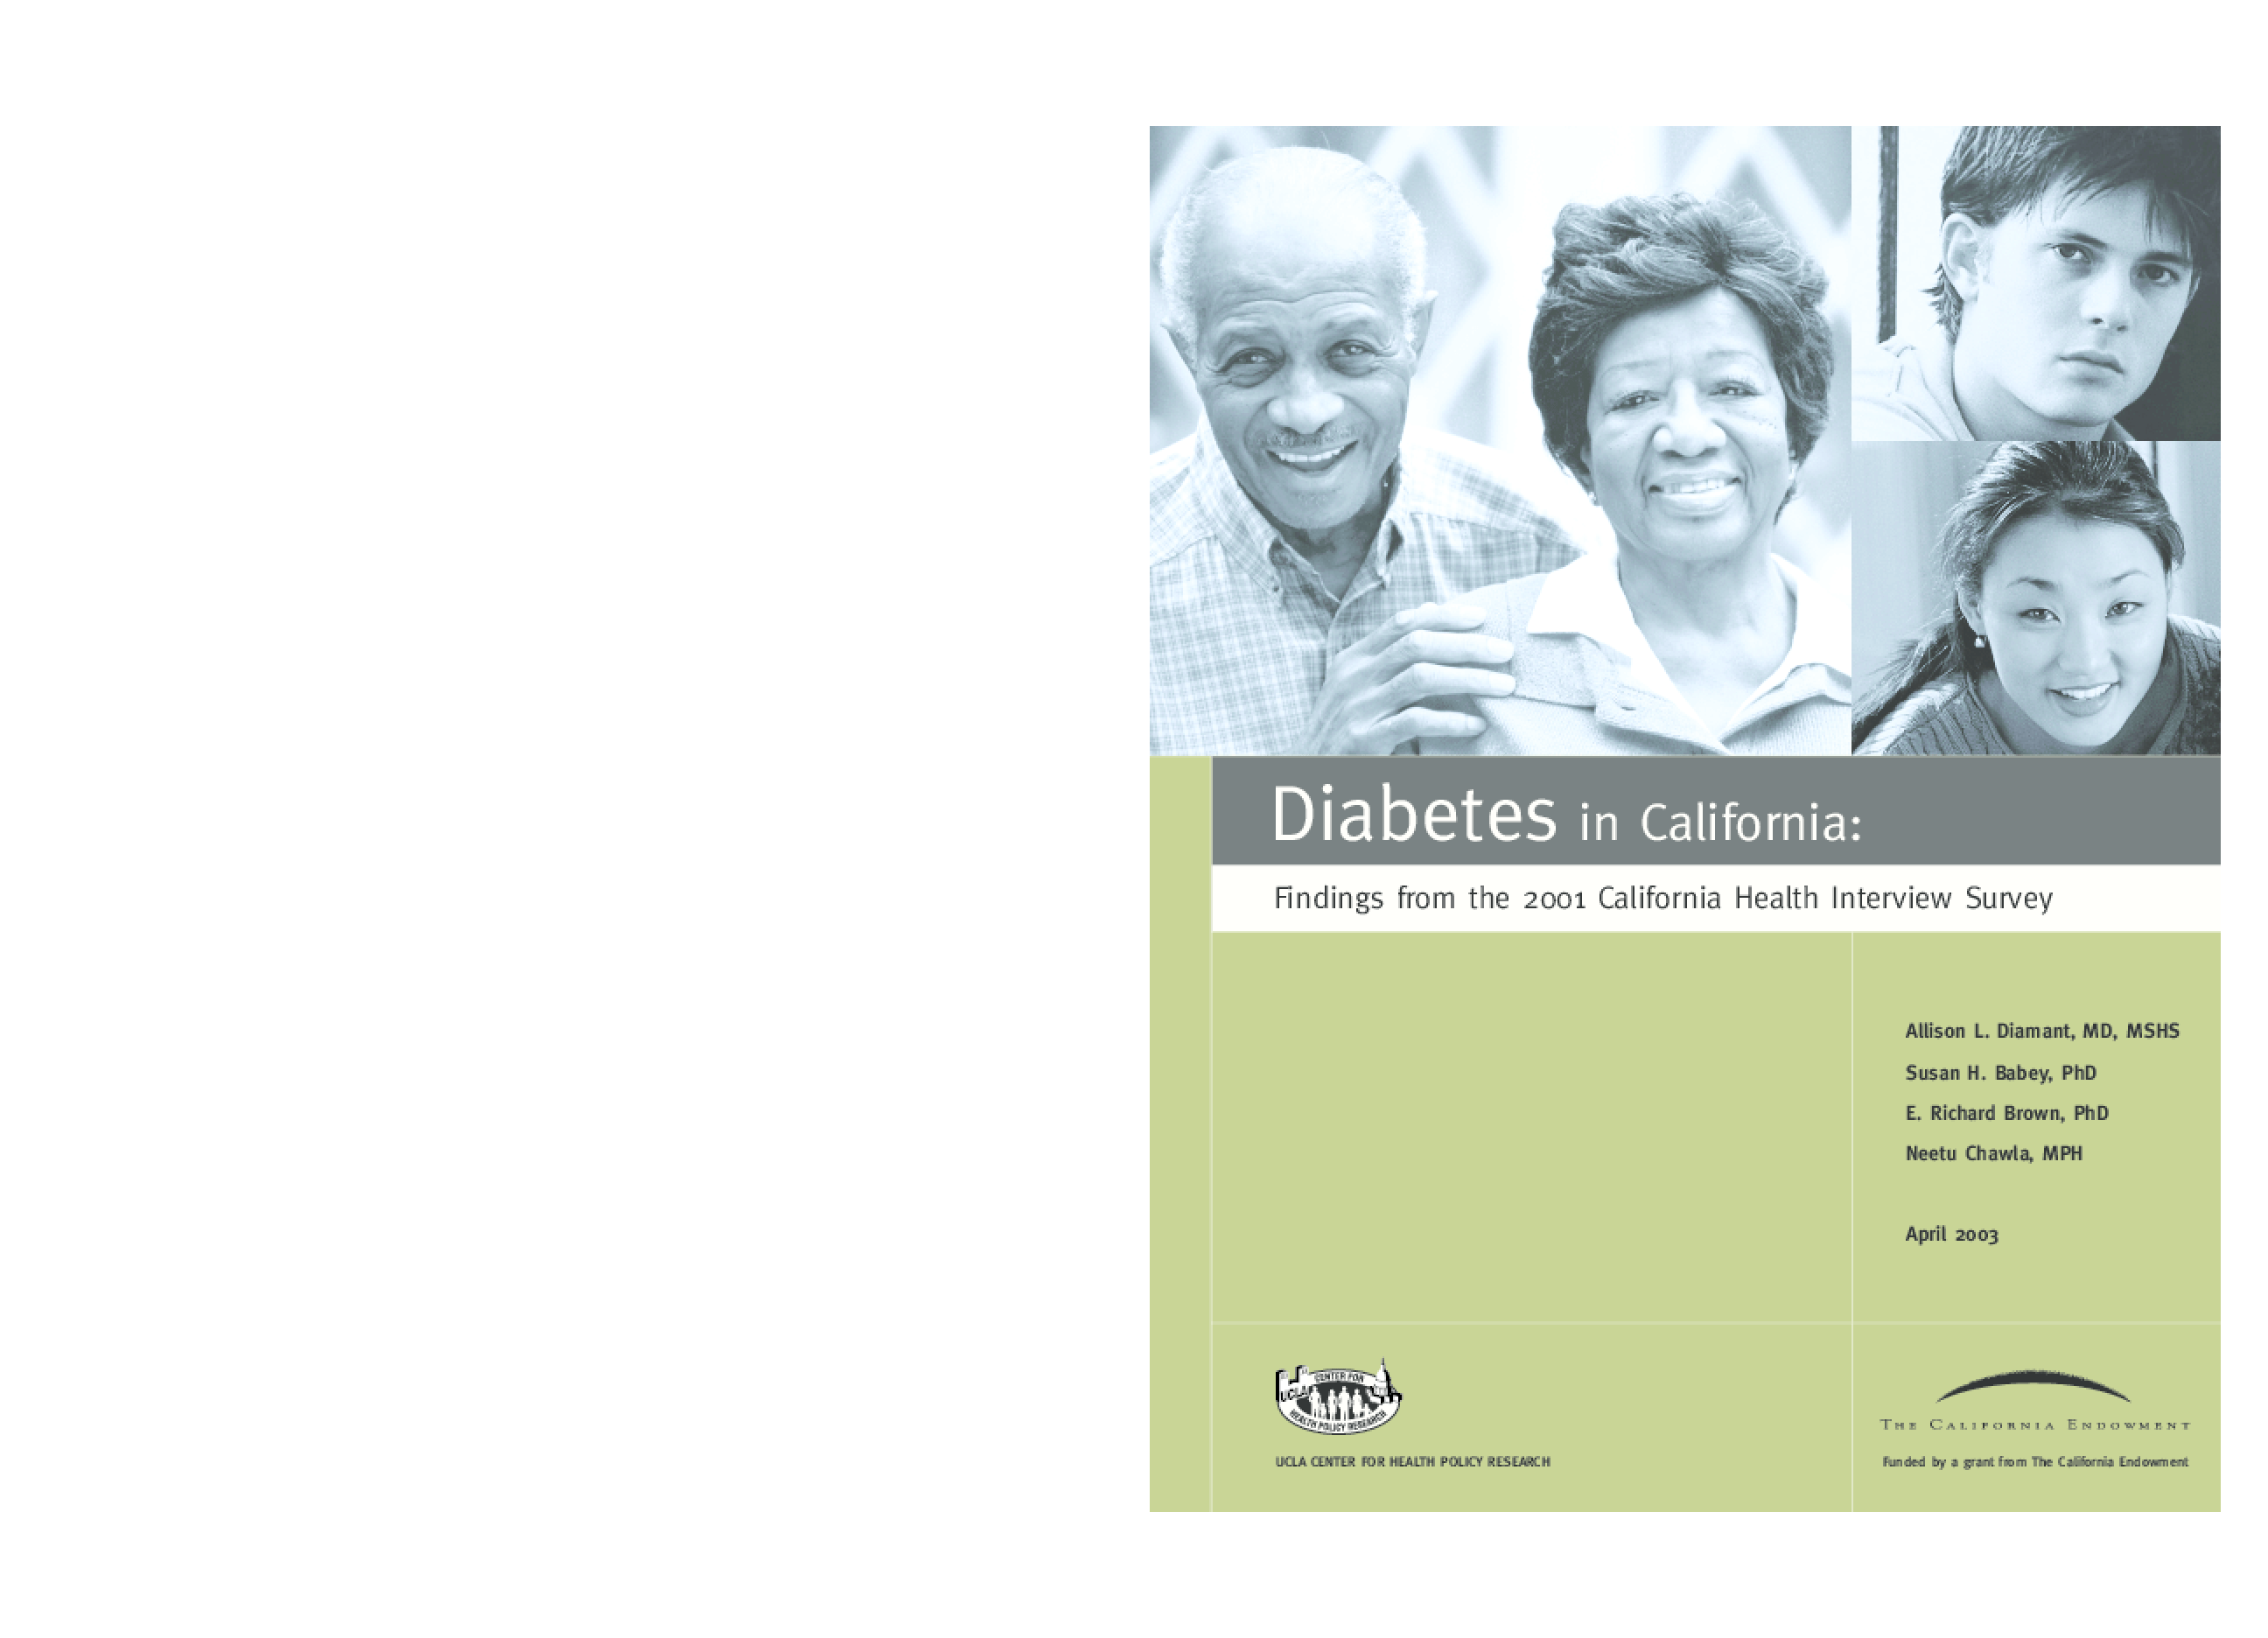 Diabetes in California: Findings From the 2001 California Health Interview Survey